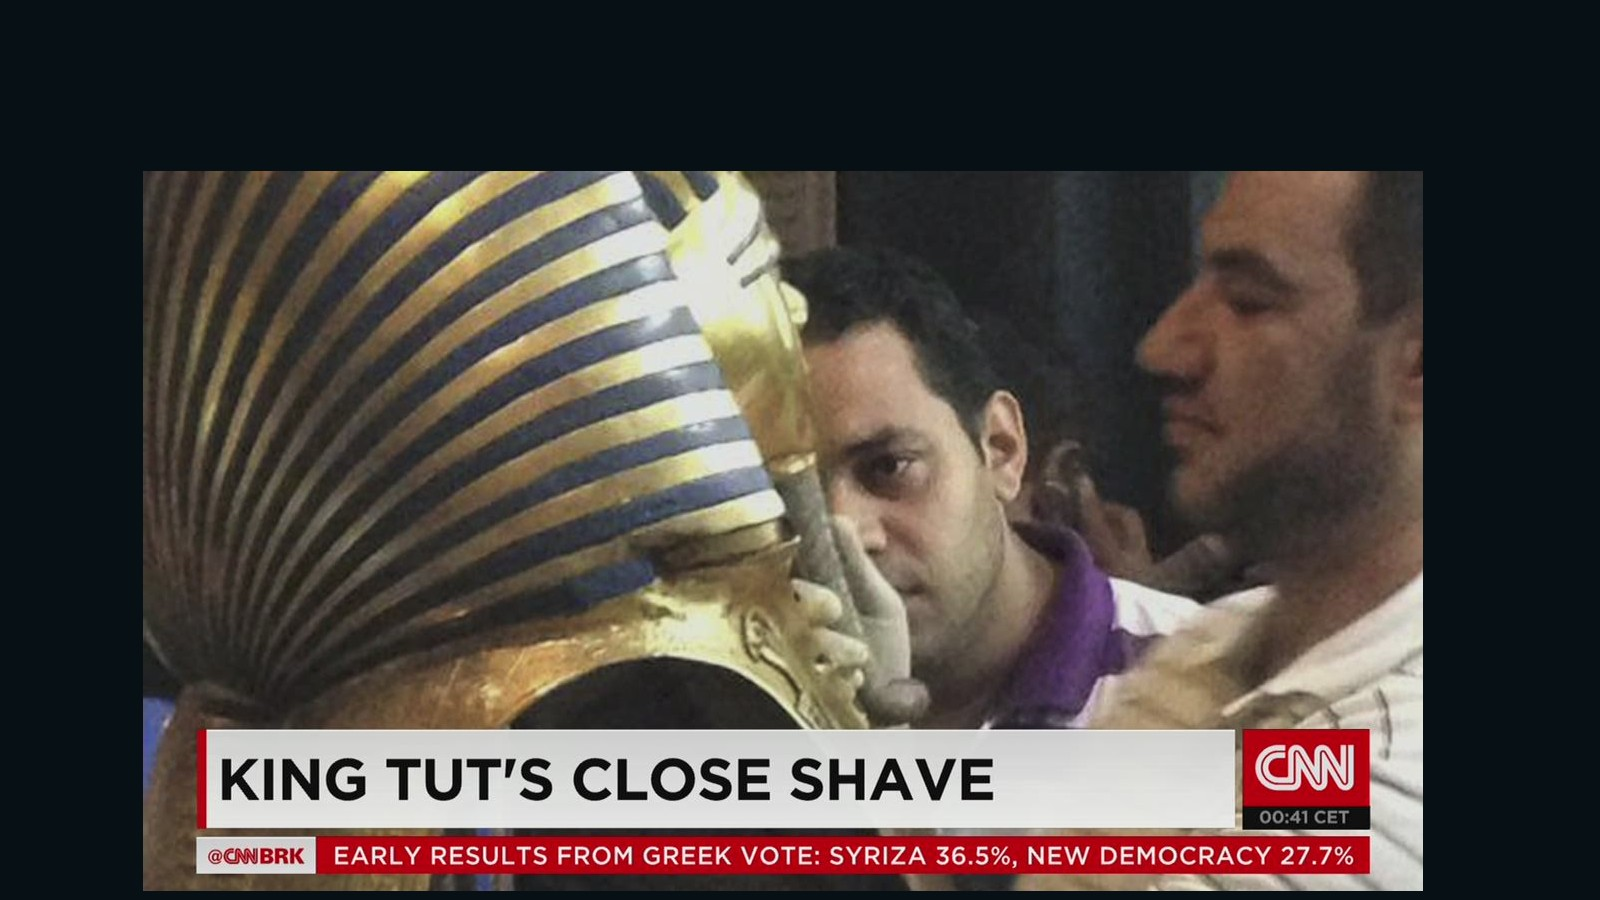 king tut eight accused of botching pharaoh s beard job com